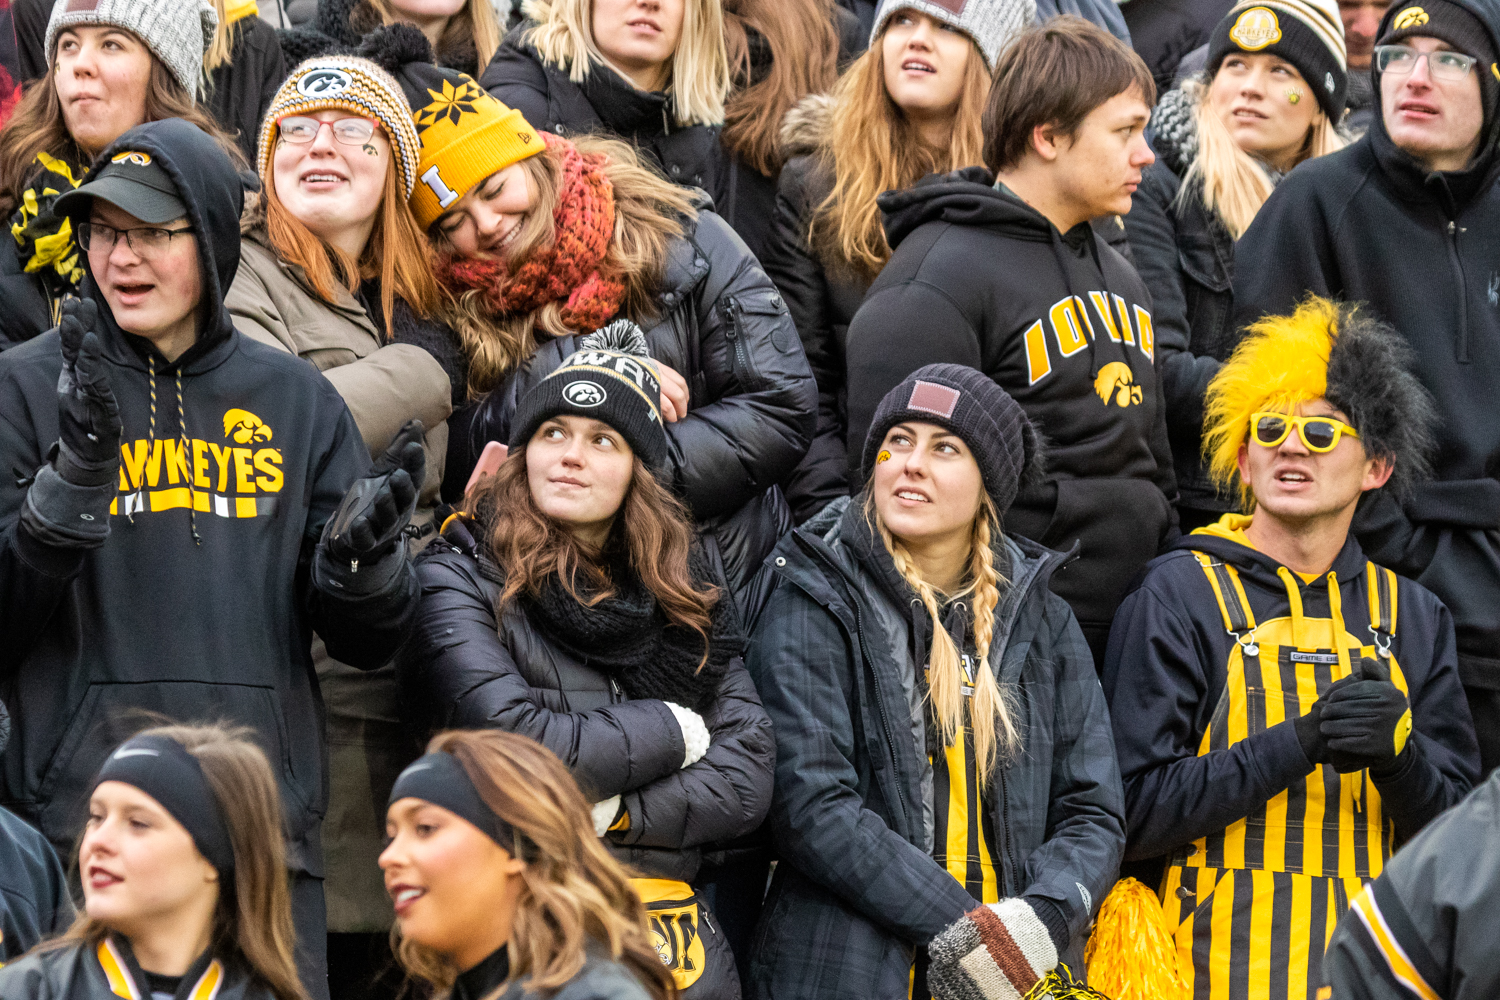 Fans+look+at+the+scoreboard+during+a+game+against+Northwestern+University+on+Saturday%2C+Nov.+10%2C+2018+at+Kinnick+Stadium+in+Iowa+City.+The+Wildcats+defeated+the+Hawkeyes+14-10.+%28David+Harmantas%2FThe+Daily+Iowan%29